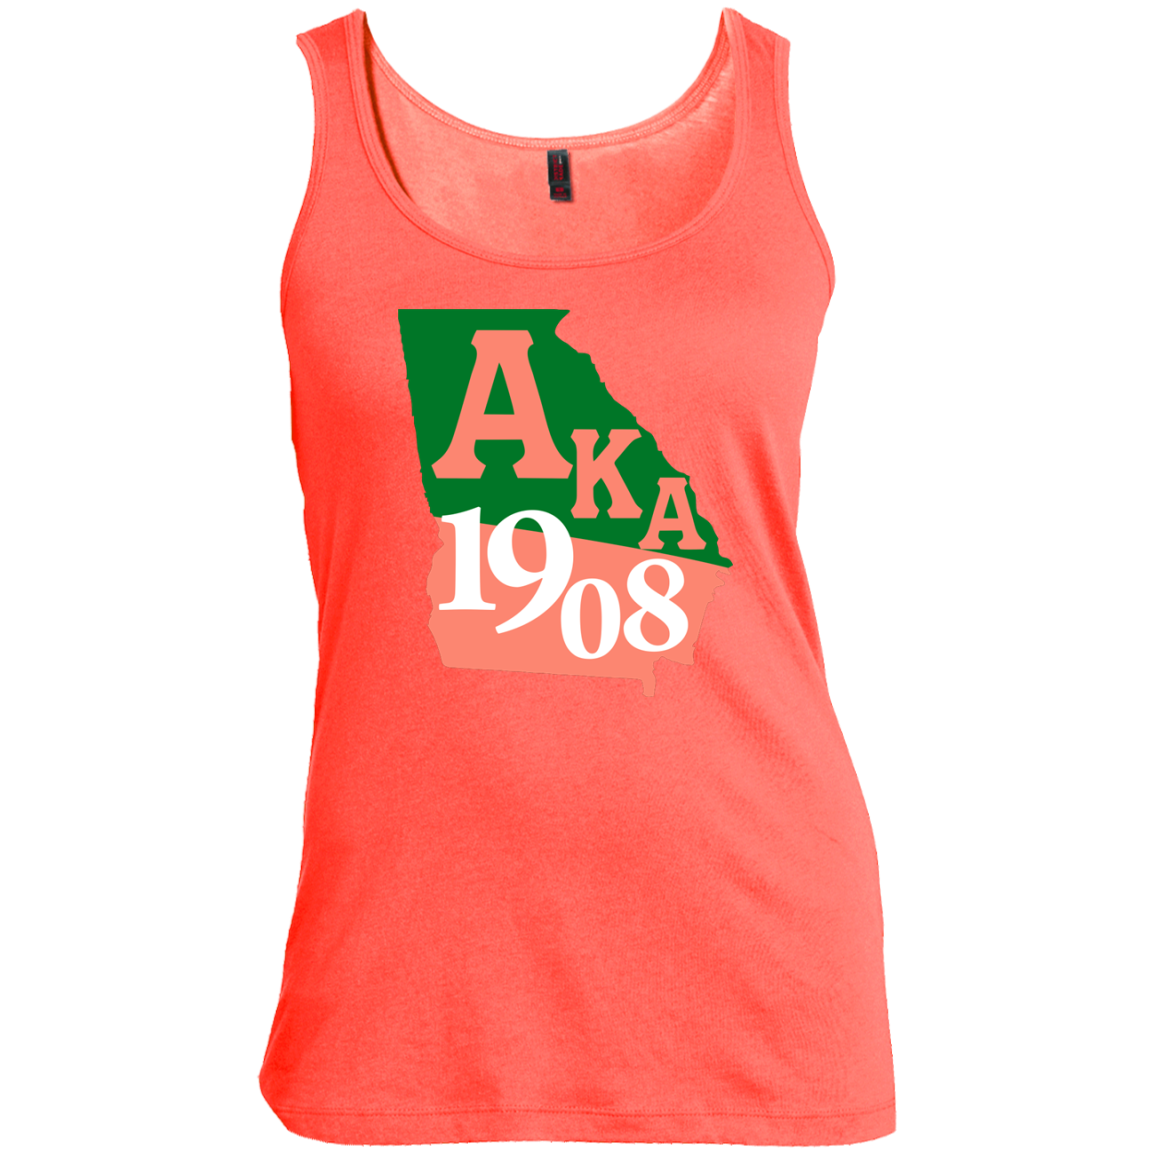 Women's Scoop Neck Tank Top